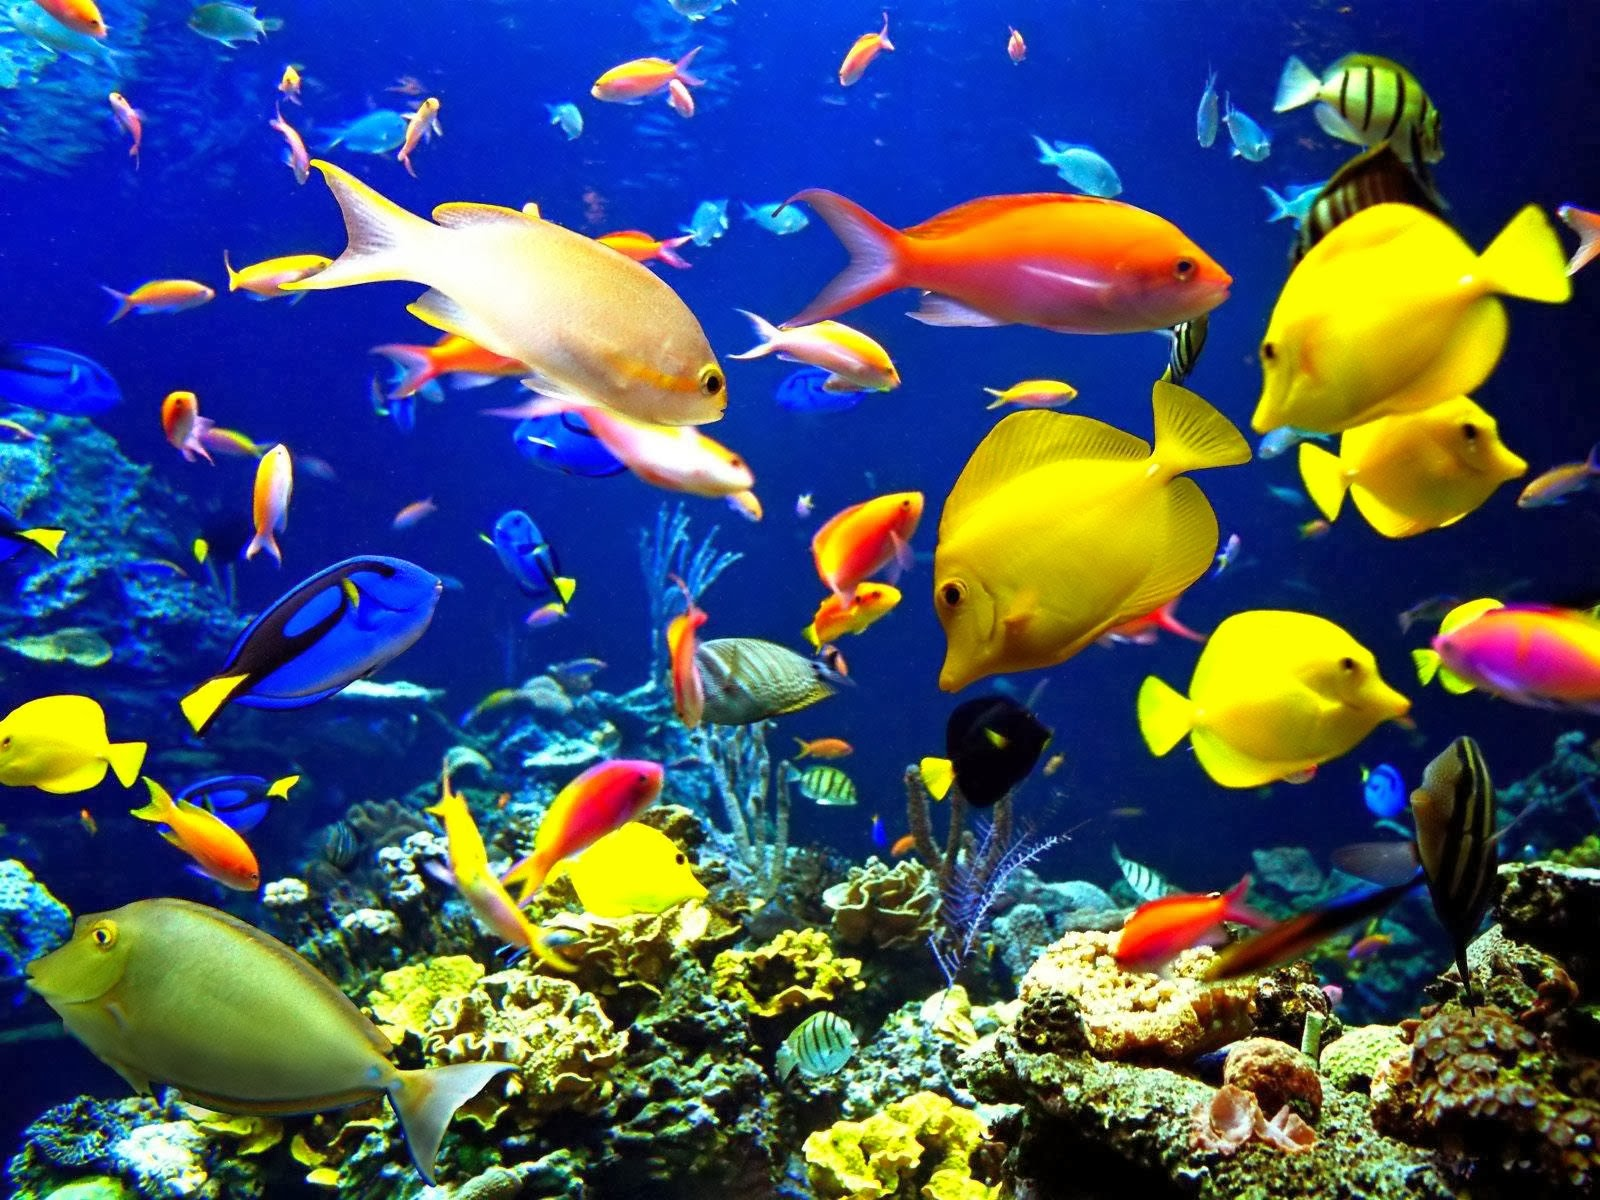 Beautiful Desktop Wallpapers 2014 Aquarium Wallpaper Free